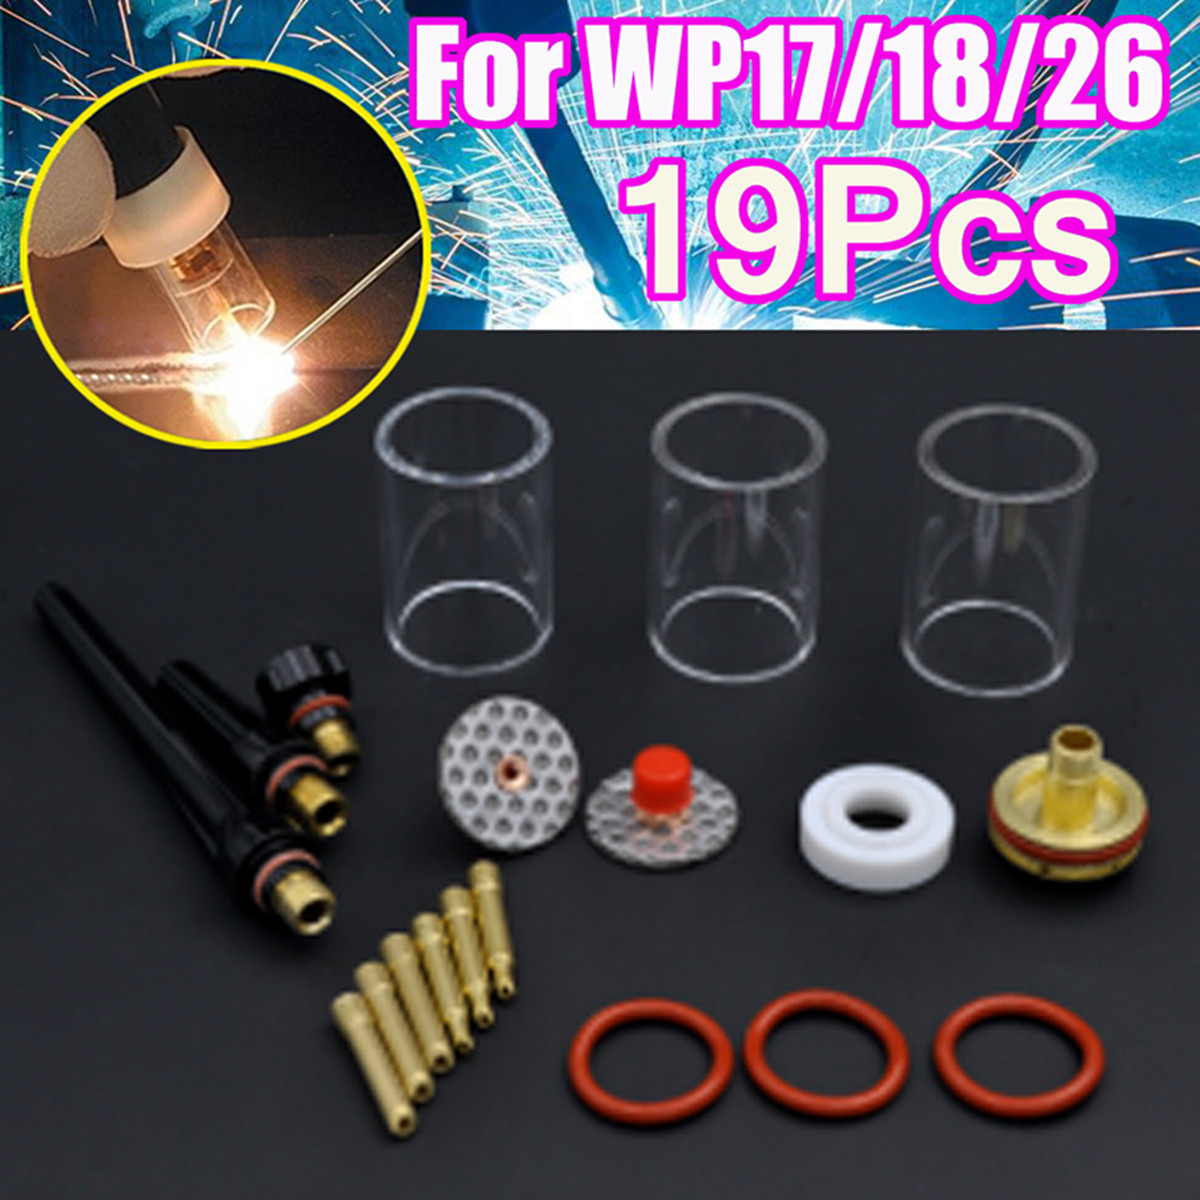 1Set 19Pcs TIG Welding Torch Kit Gas Lens Pyrex Glass Cup for WP-17/18/26 Series Welding Accessories tig 26 wp 26 wp26 wp 26 tig 26 tig welding torch dinse connection quick connector gas electric seperated 4m